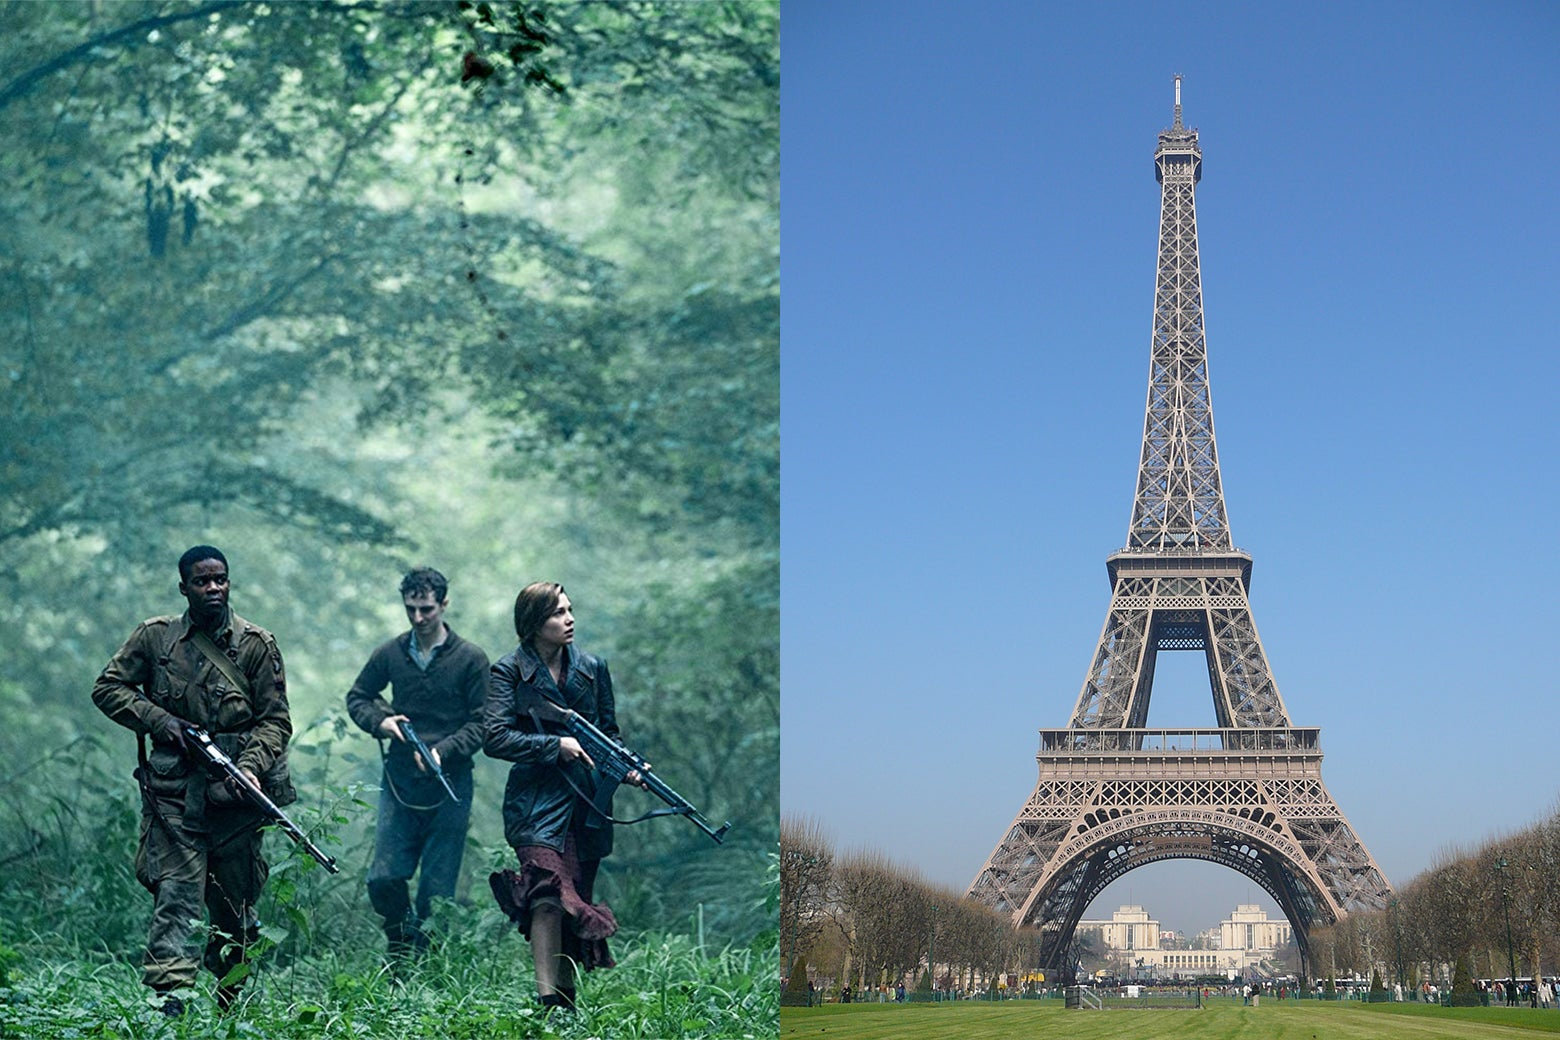 Soldiers walking through a forest from Overlord, paired with an image of the Eiffel Tower.